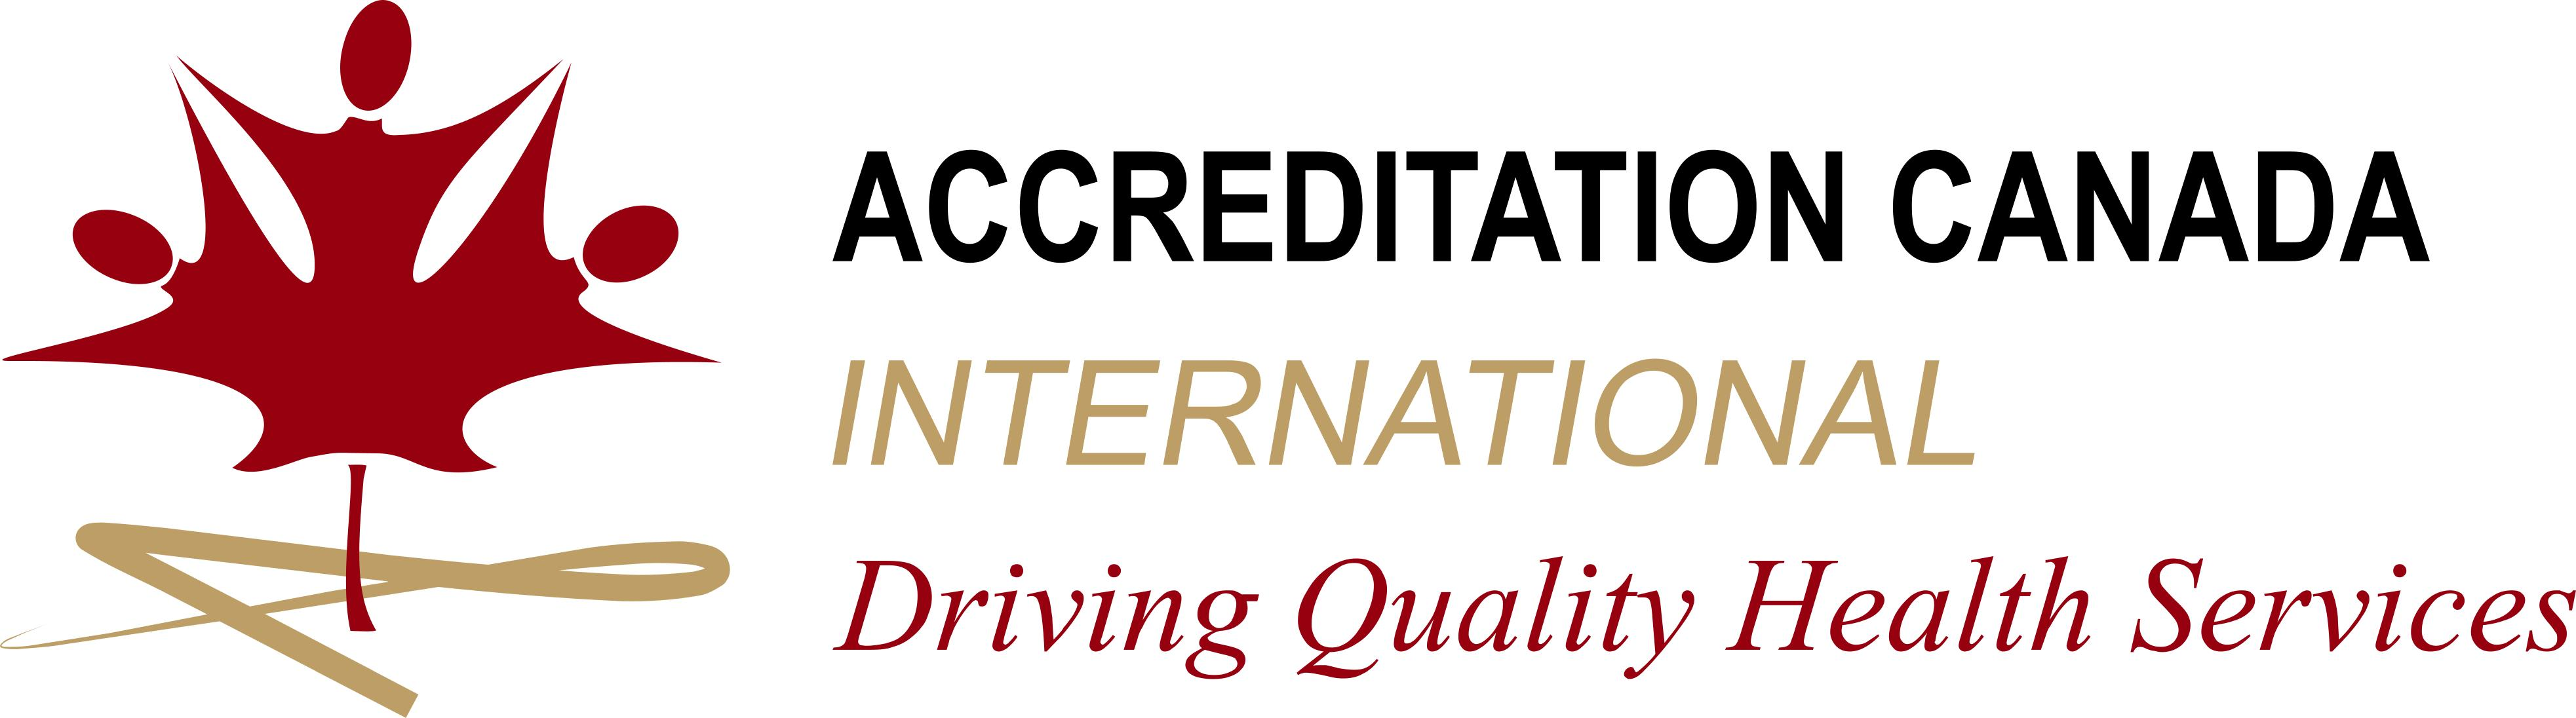 Logotipo de Accreditation Canada International